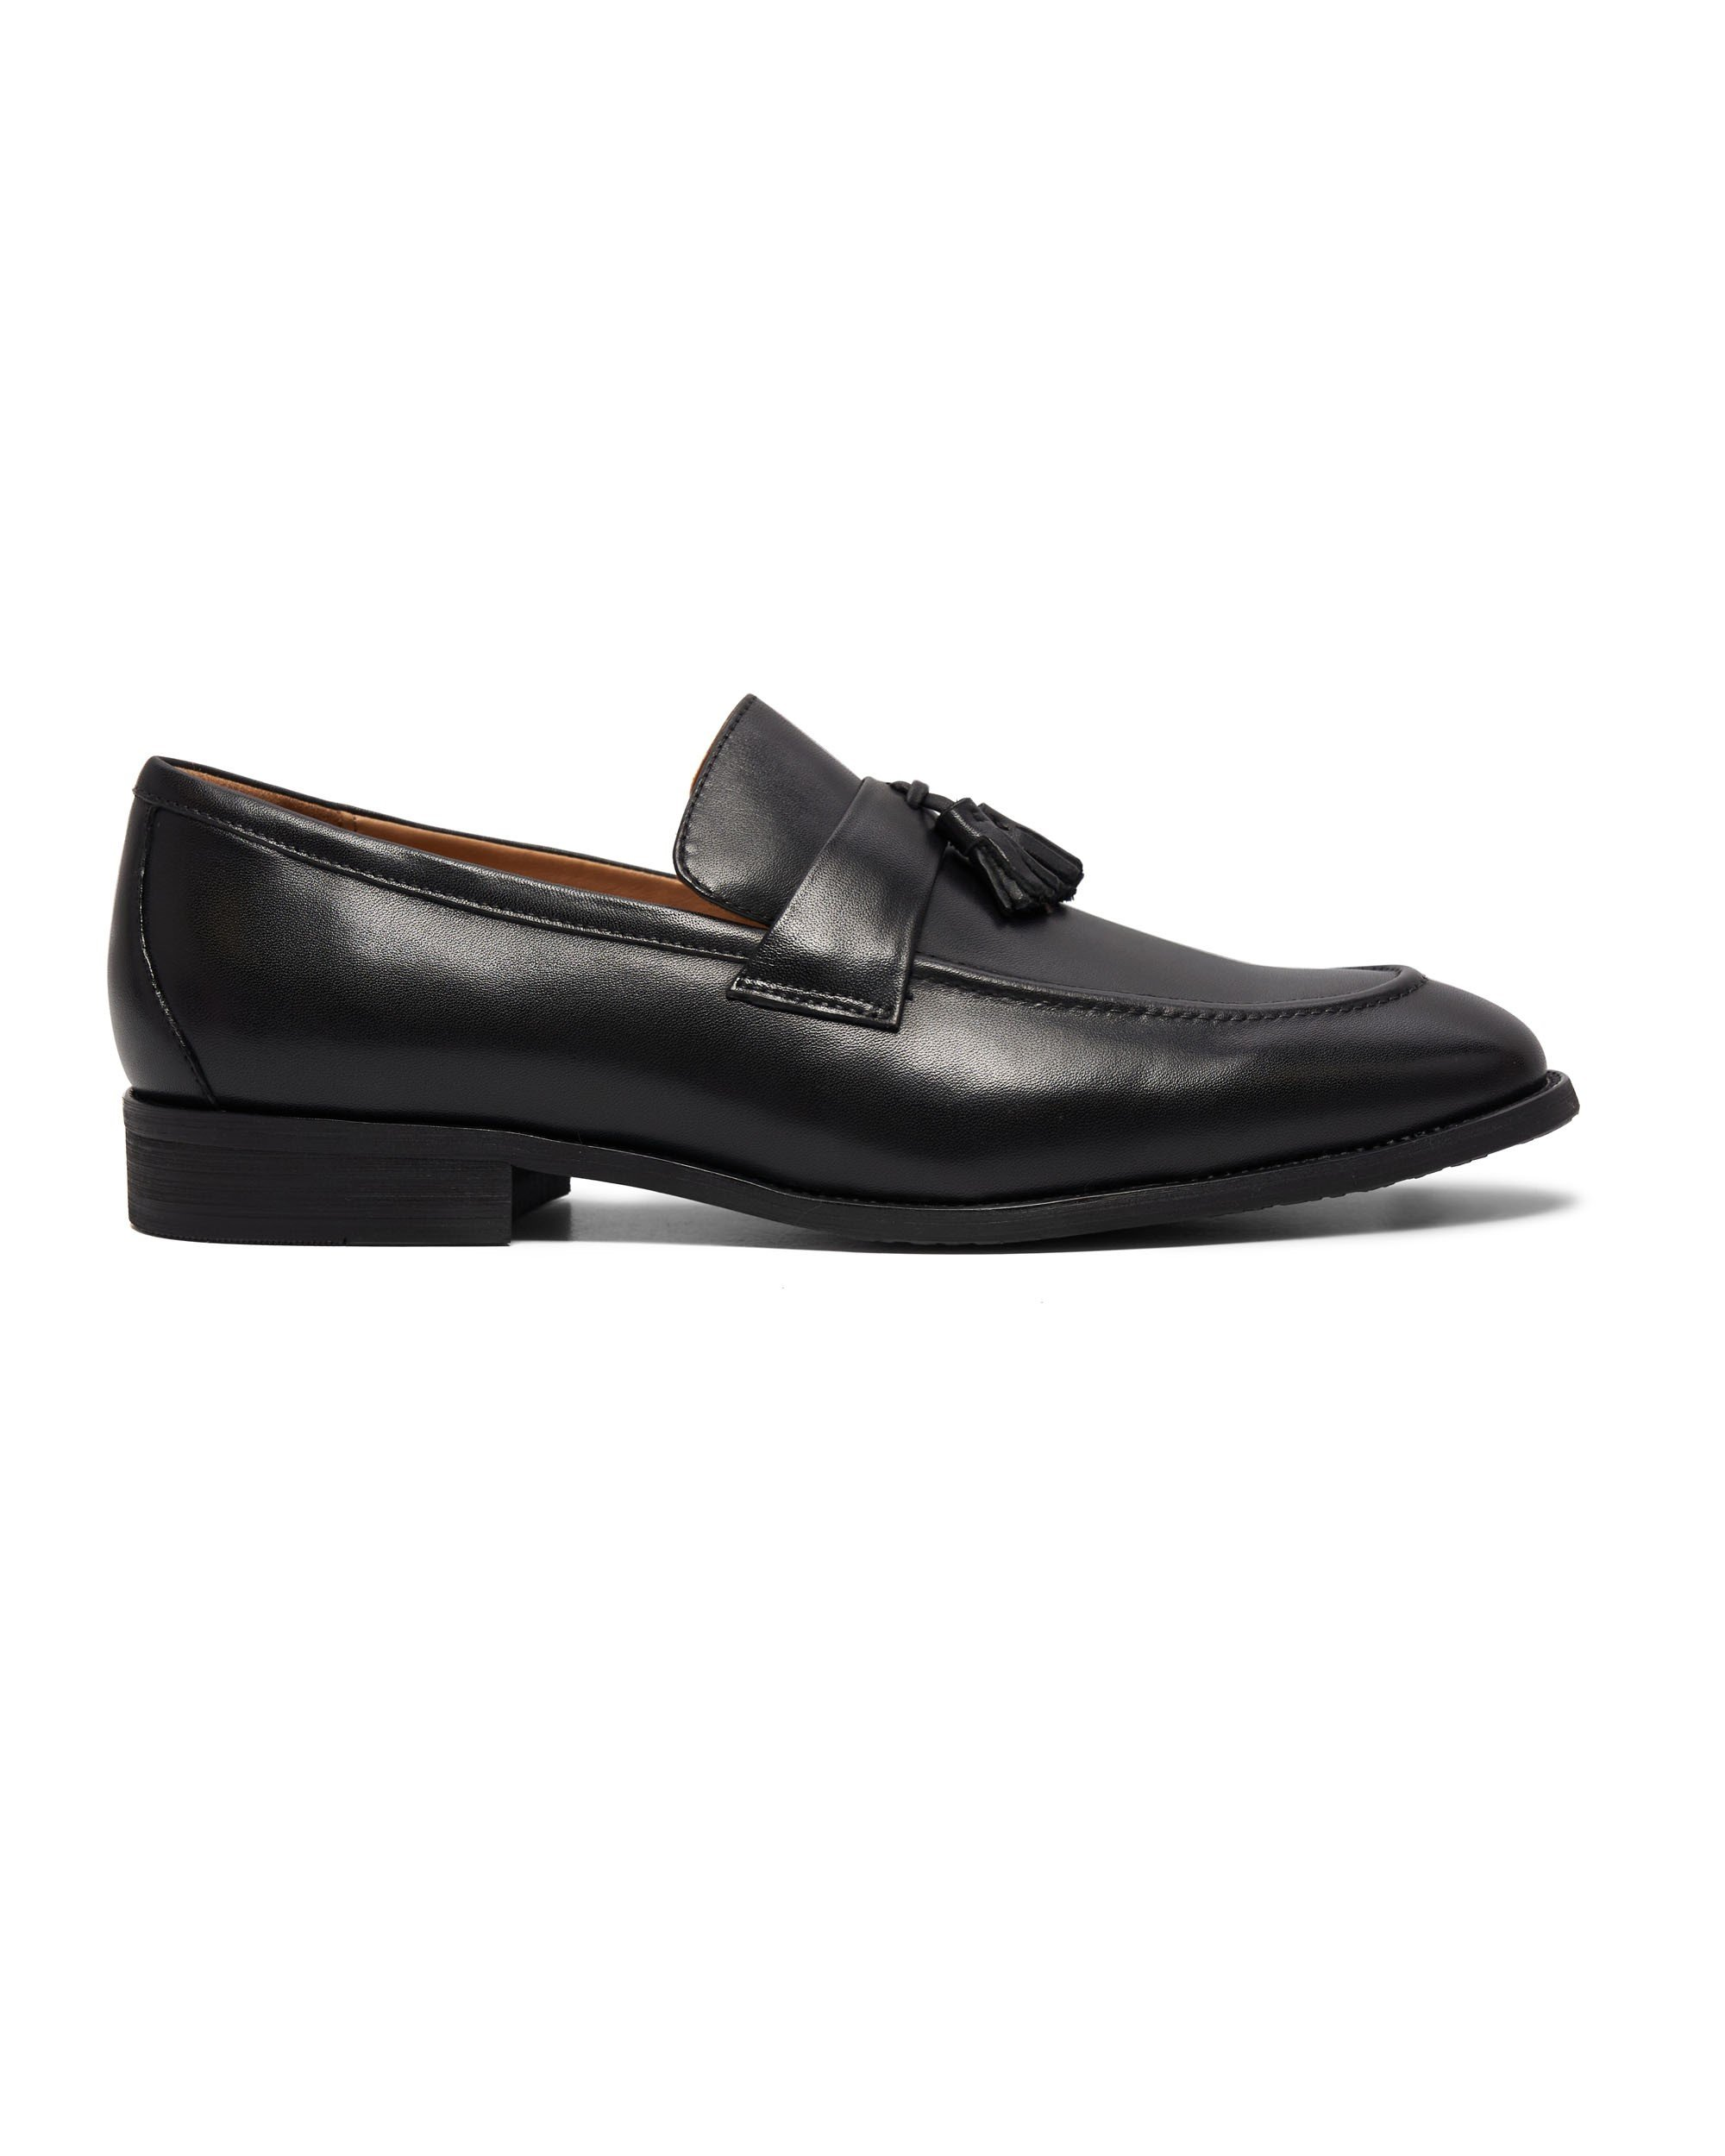 Brent Wilson Designer shoes for weddings and work